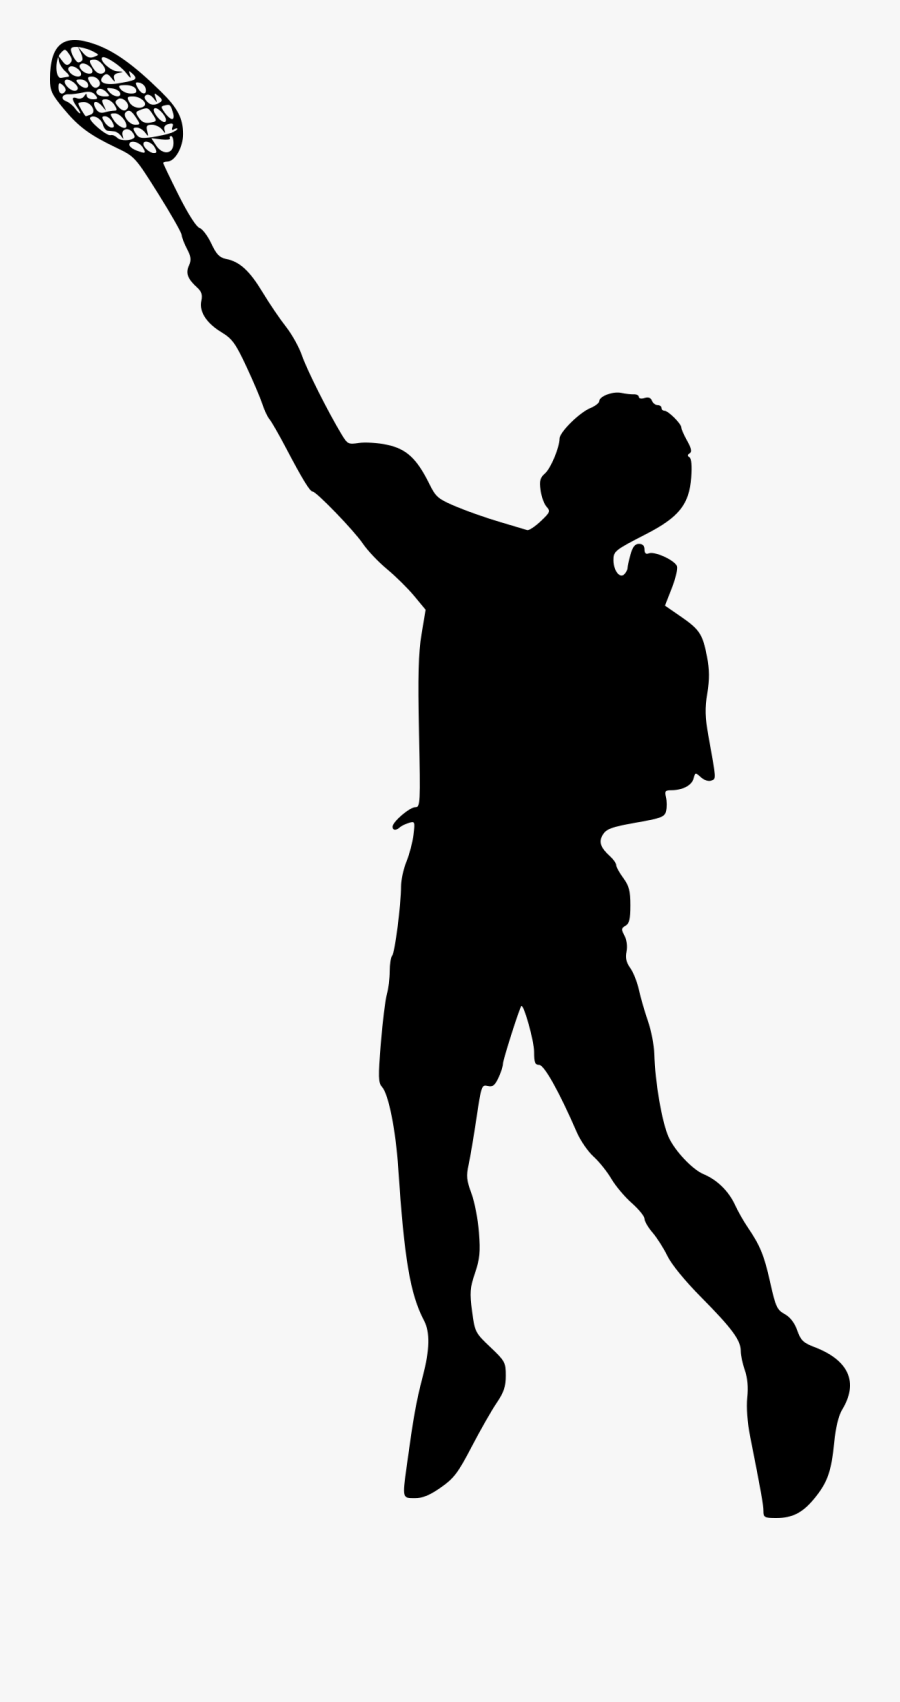 Png File Size - Playing Badminton Silhouette Png, Transparent Clipart